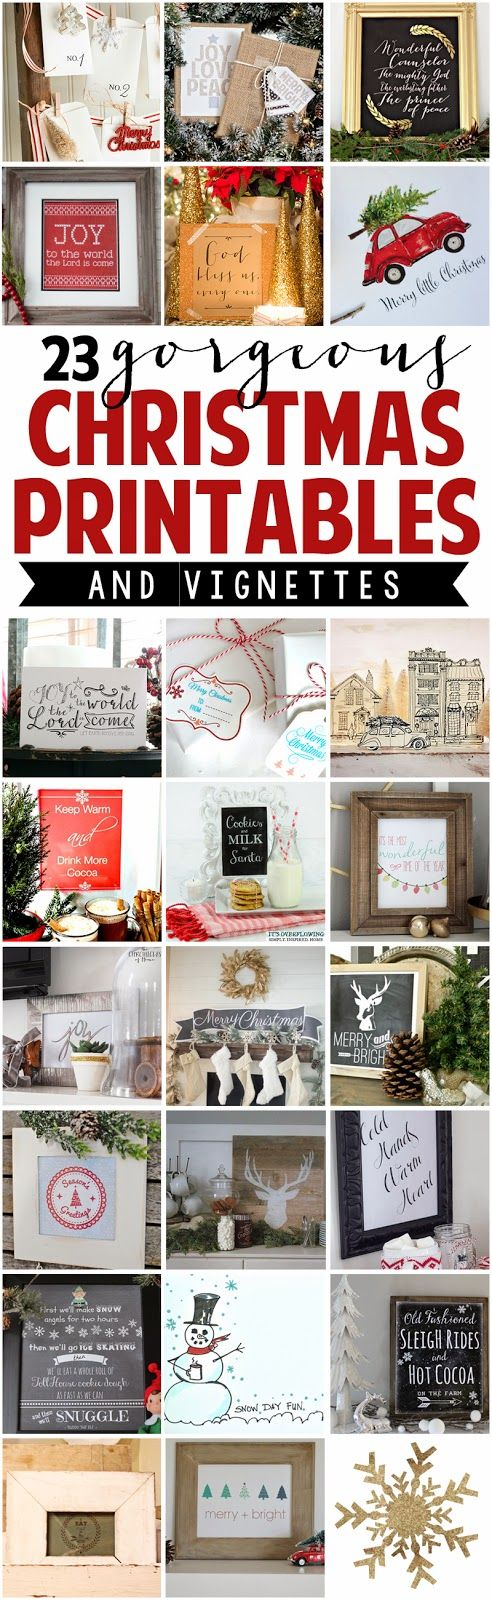 The Chronicles of Home: FREE CHRISTMAS PRINTABLE + A Ten Minute Holiday Vignette